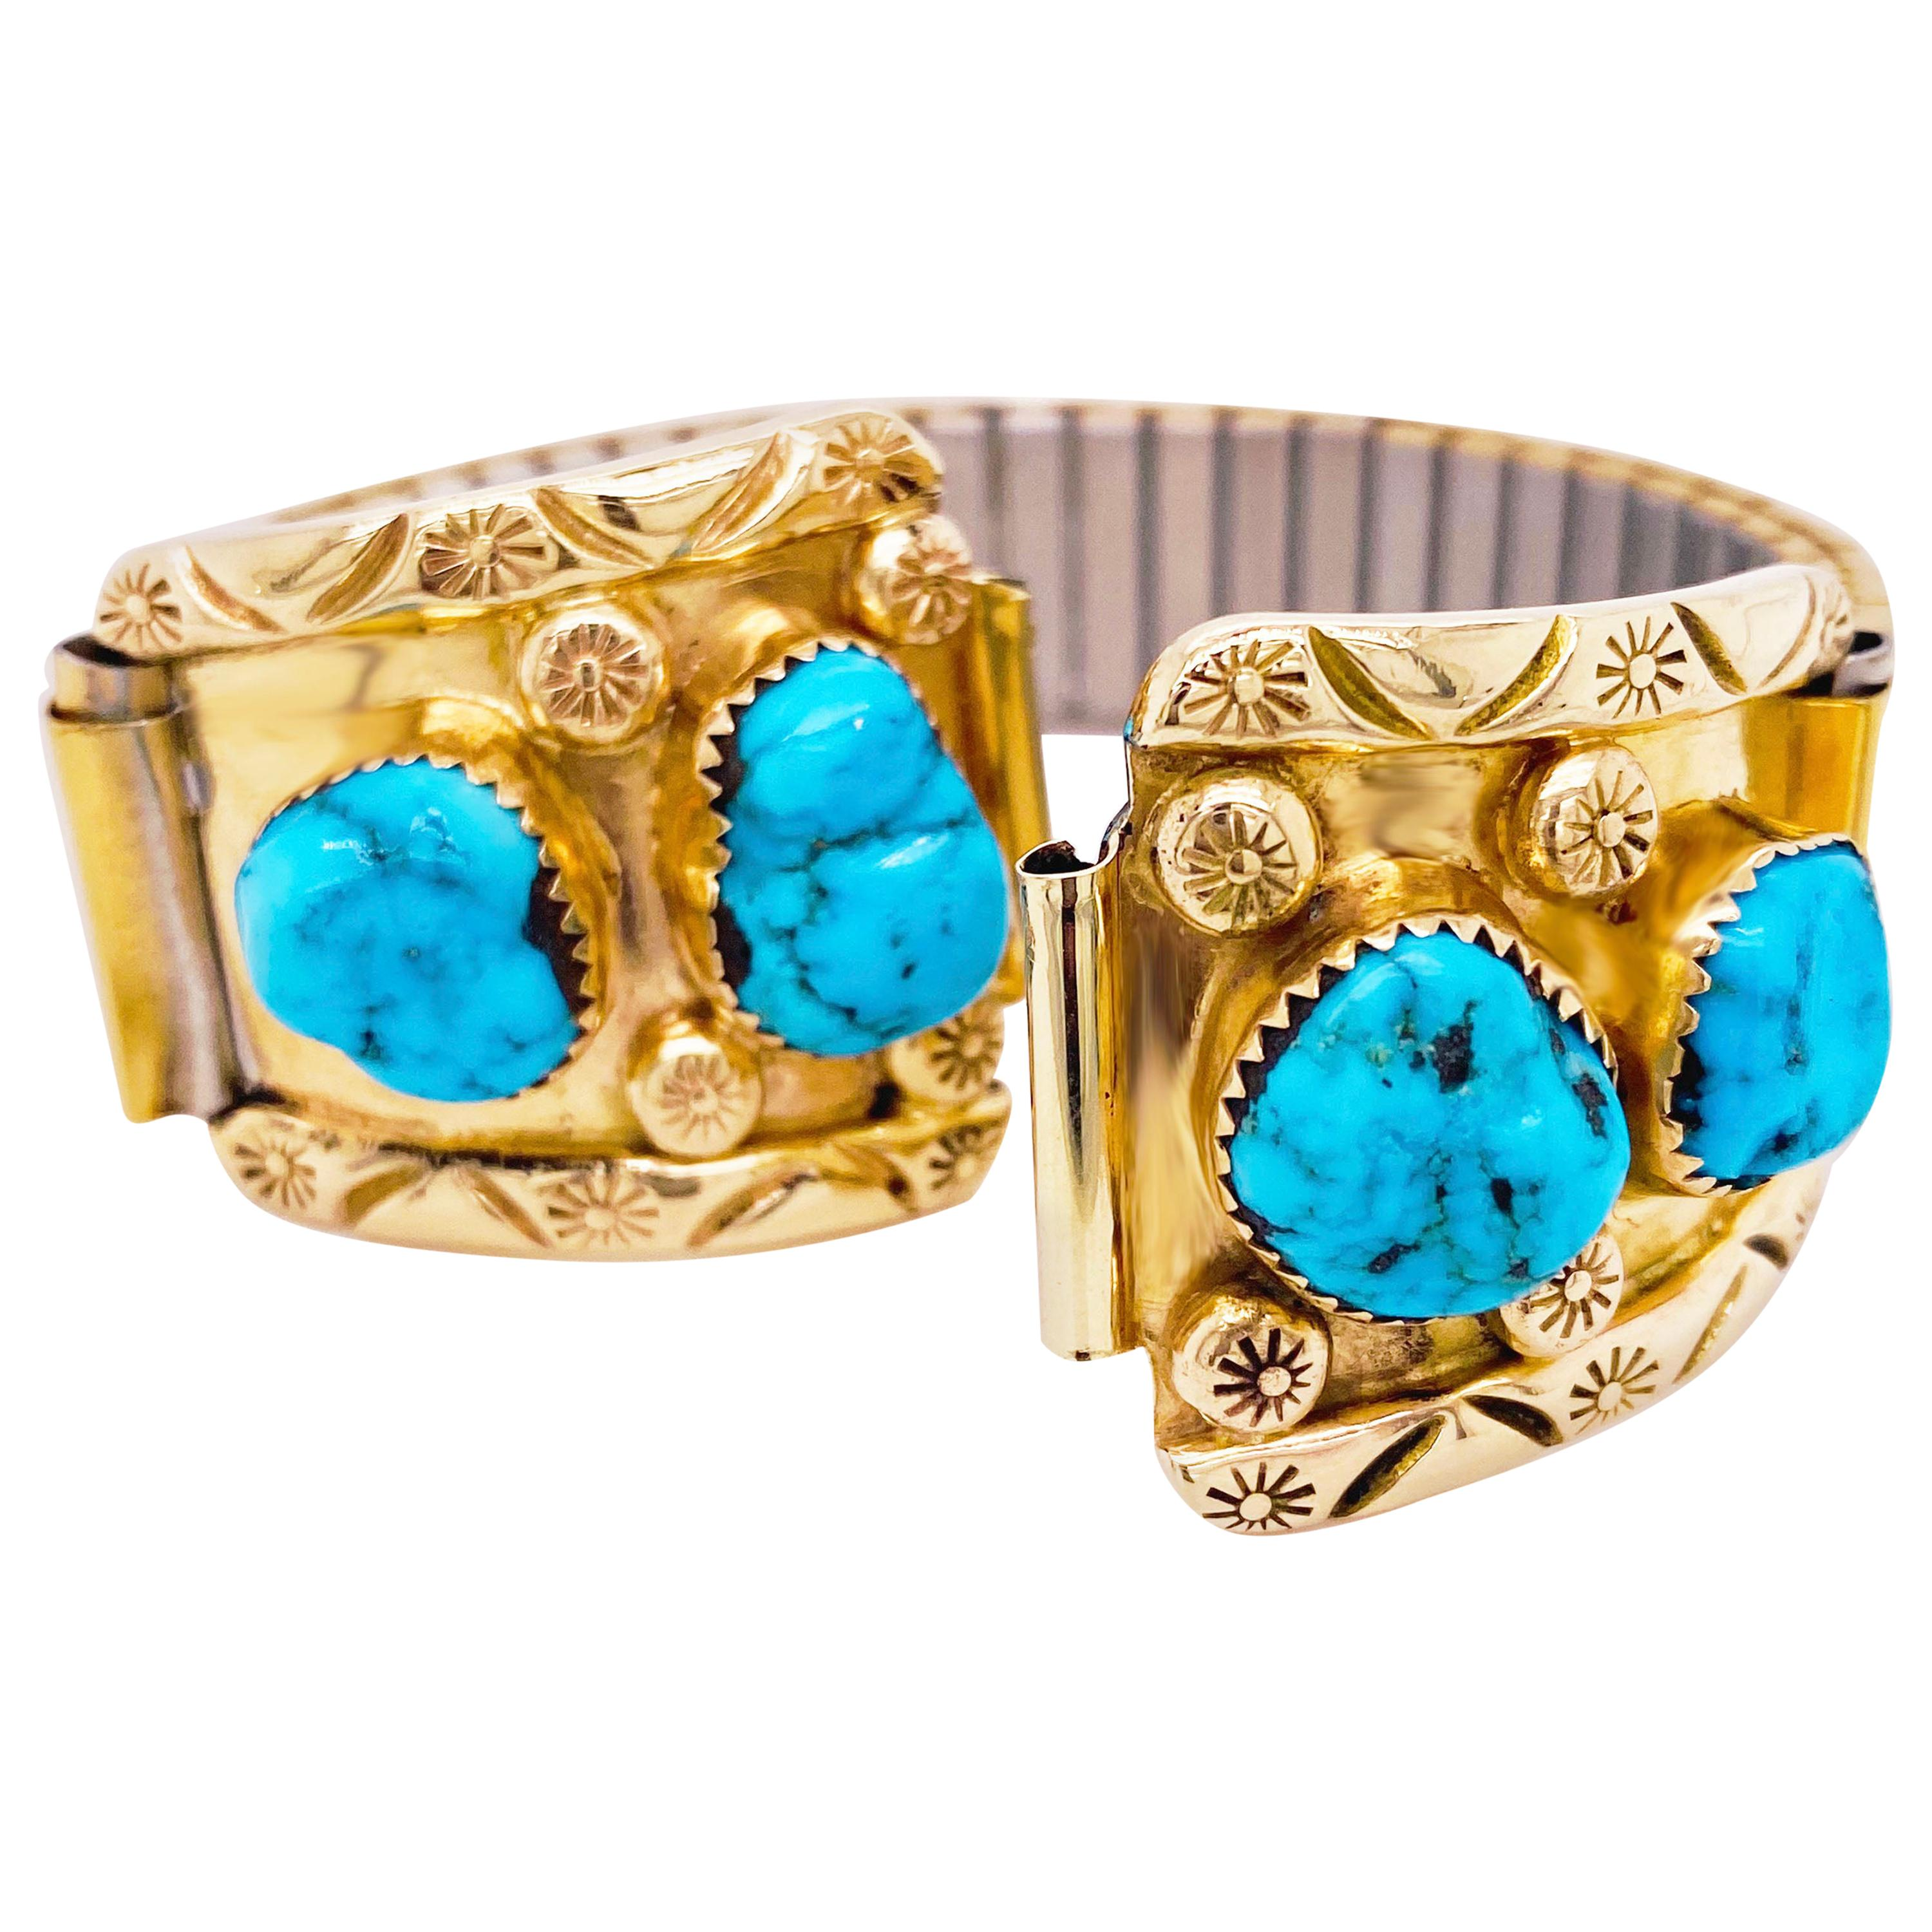 Turquoise Gold Watch Tips, 14 Karat Yellow Gold, Turquoise Nugget in 14k Gold